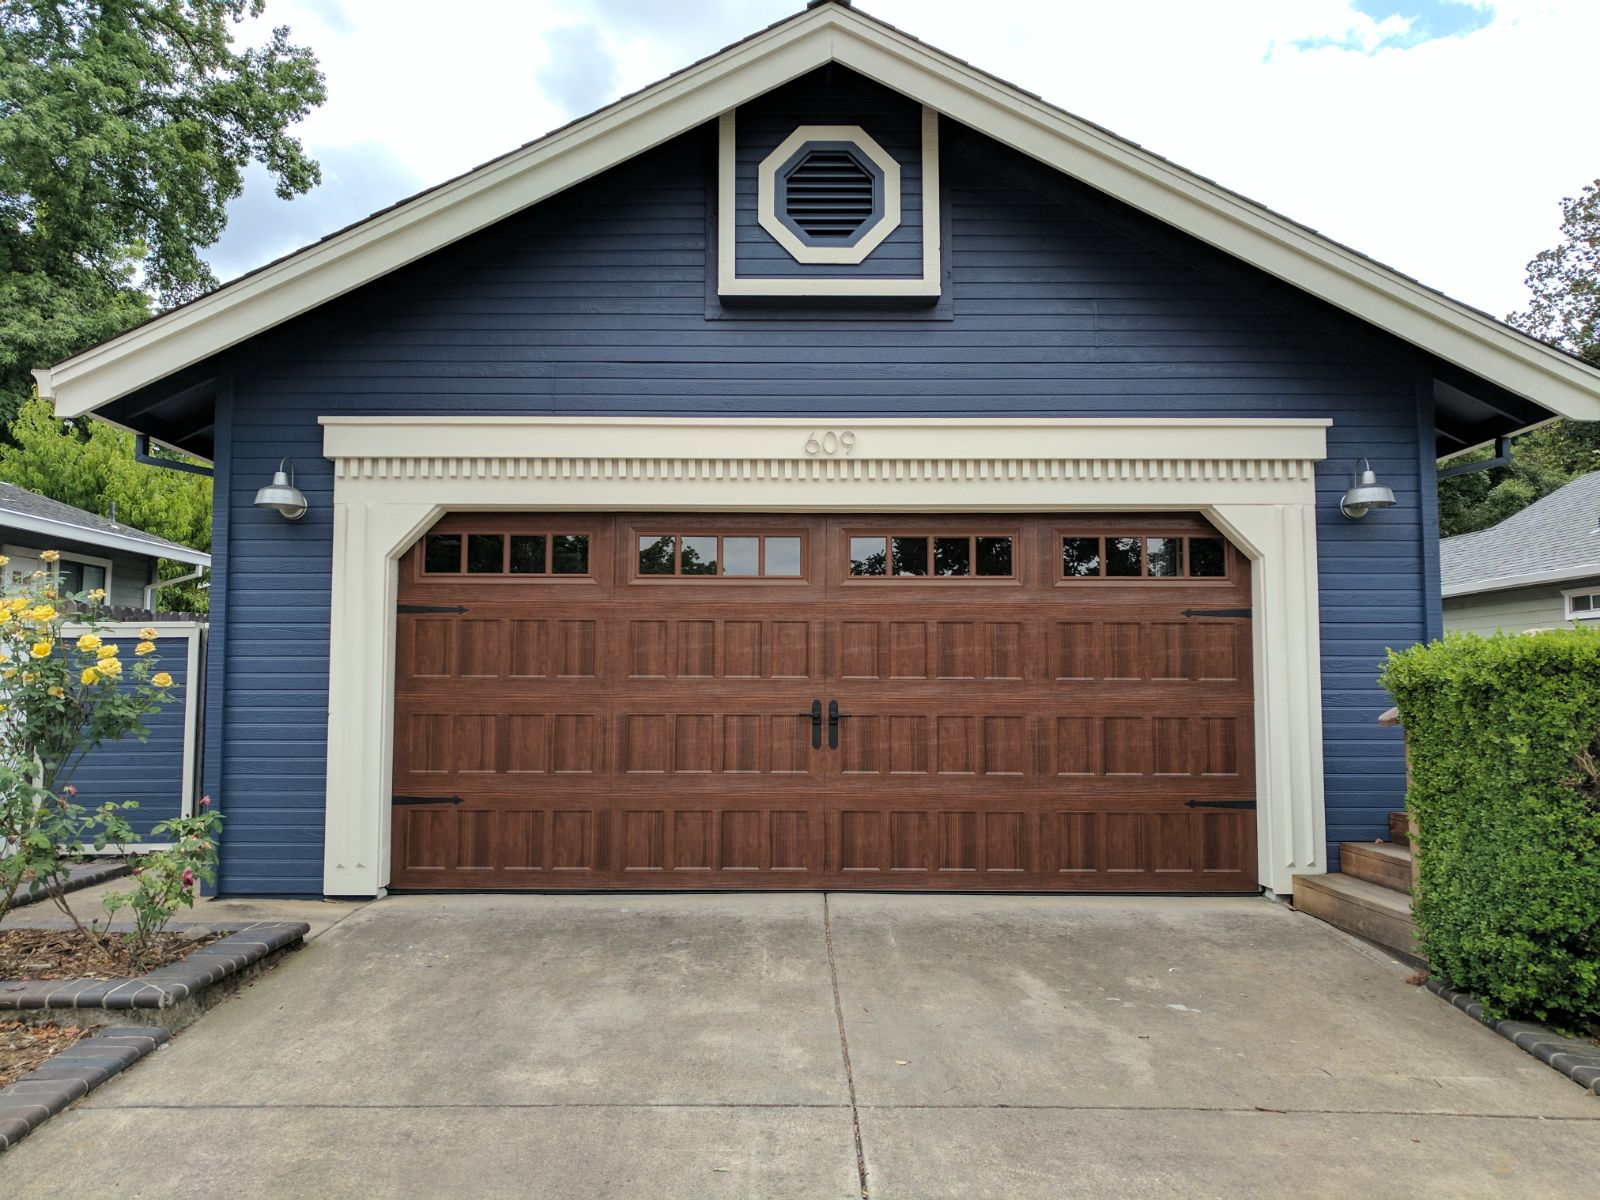 Oak summit 1000 garage doors by amarr sugar land garage for 2 door garage door